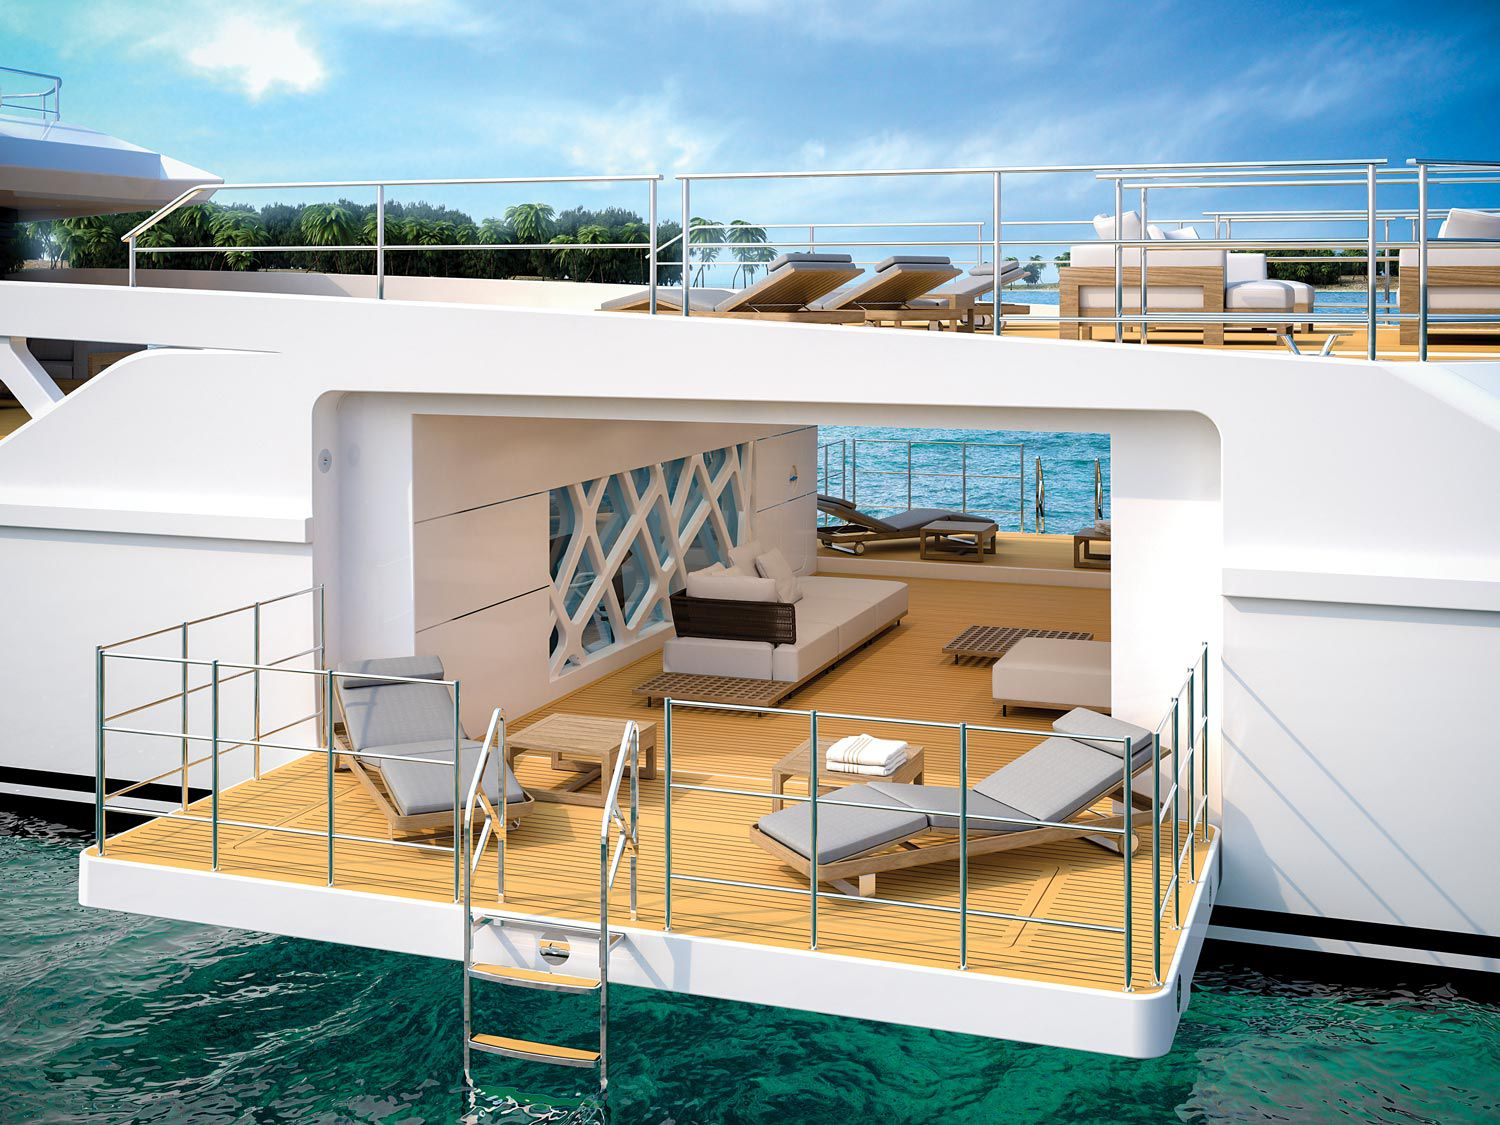 The Rosetti Superyachts supply vessel yacht concept combines the features of a shadow boat with those of a luxury yacht. Above this beach club is a helipad.